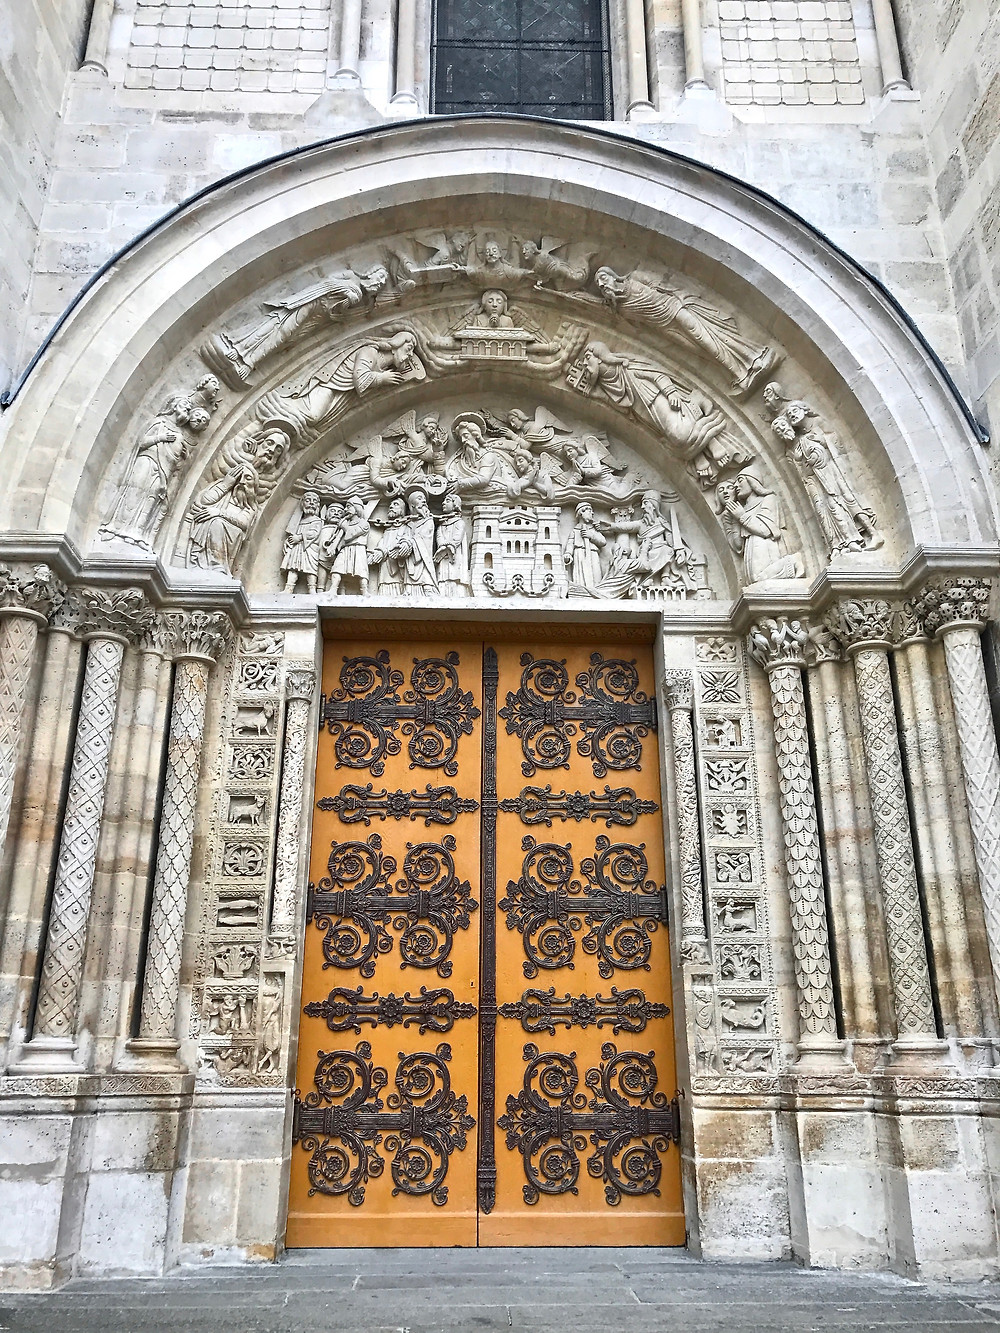 the central entry door to the Basilica de Saint-Denis with ornate wrought iron strap hinges